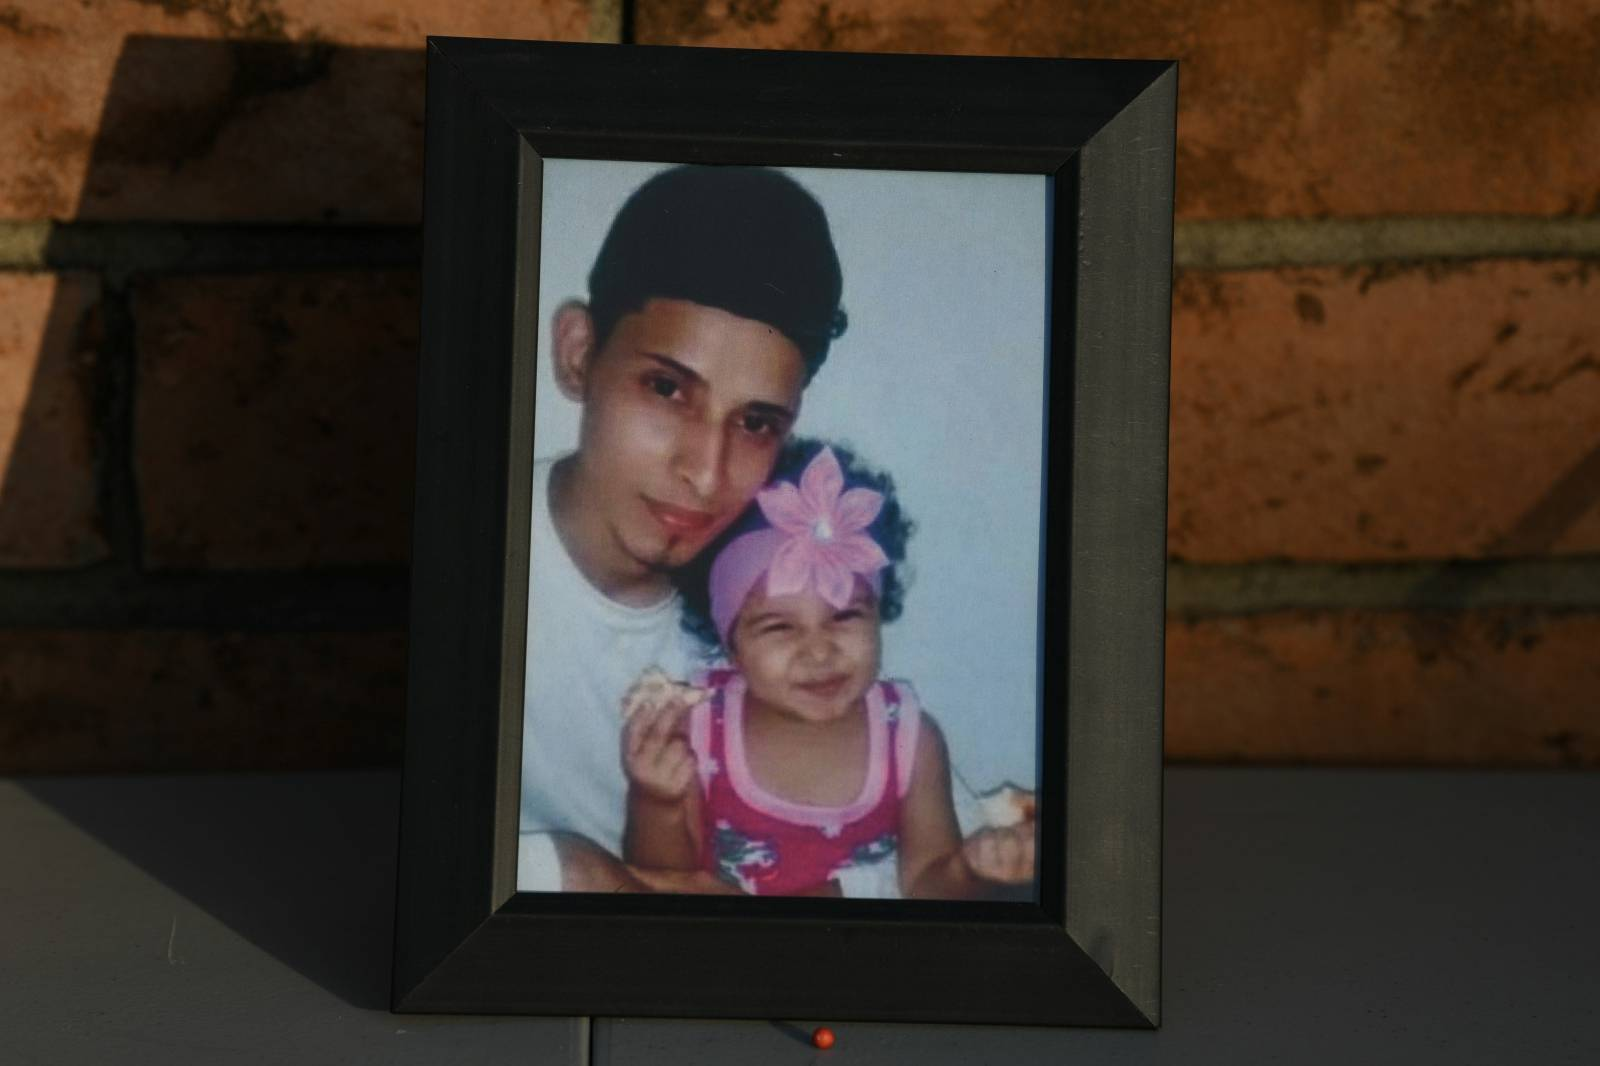 The lives of a Salvadoran migrant and his 23 month-old daughter, who drowned in the Rio Grande, are honored during a vigil in Brownsville